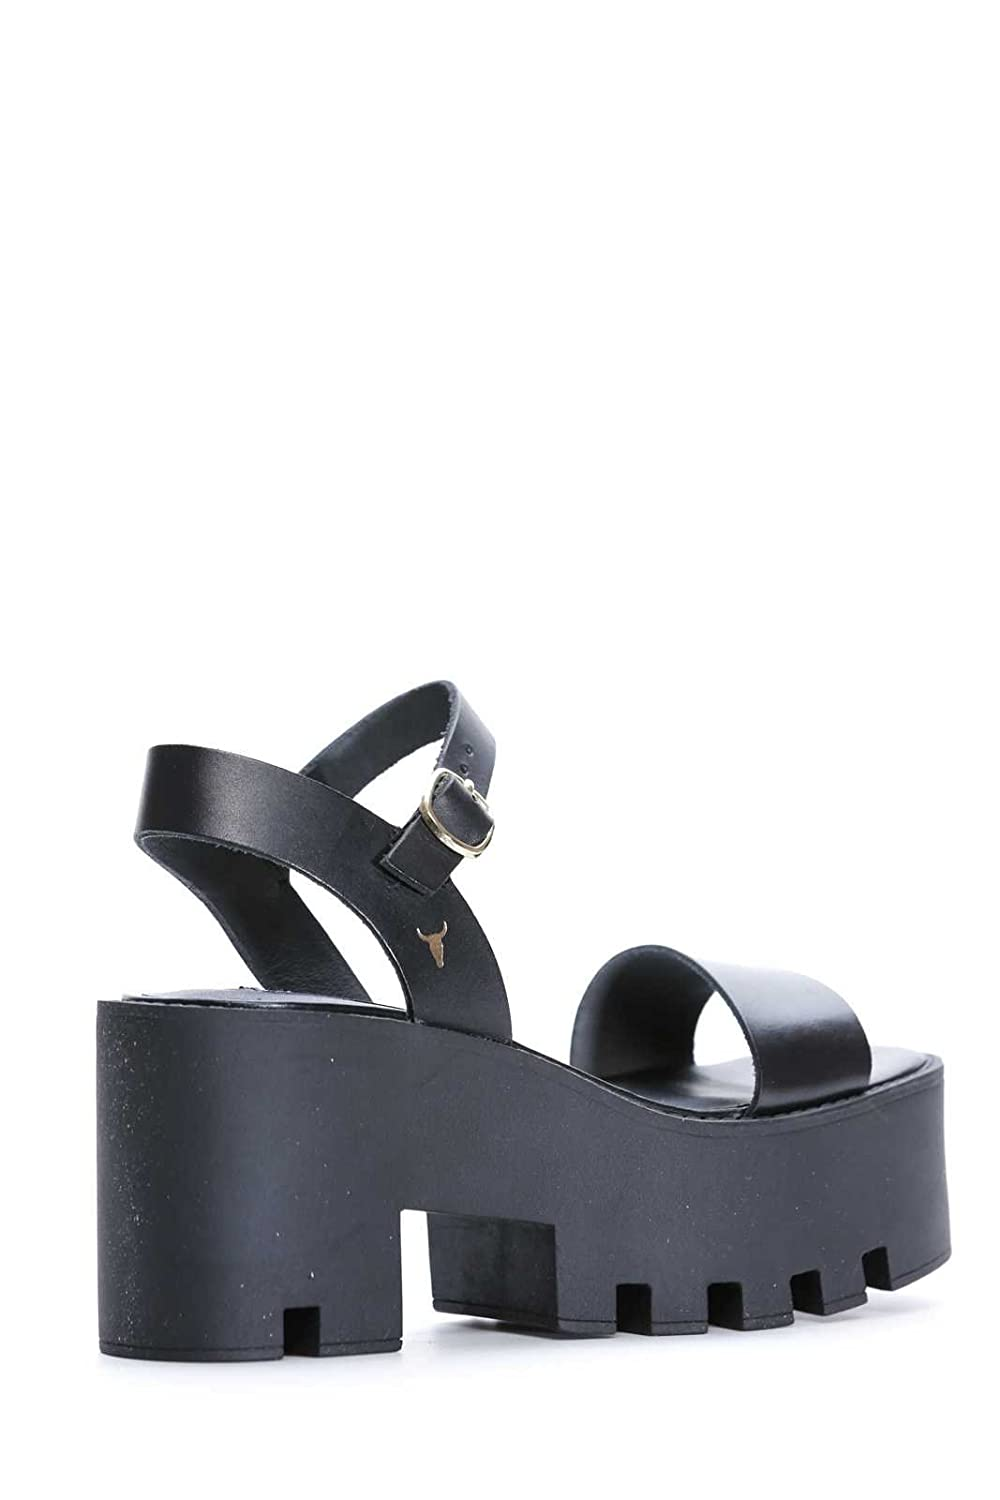 Women'S Shoes Windsor Smith Wss Duffy Blk Black 1/i Spring Summer 2018